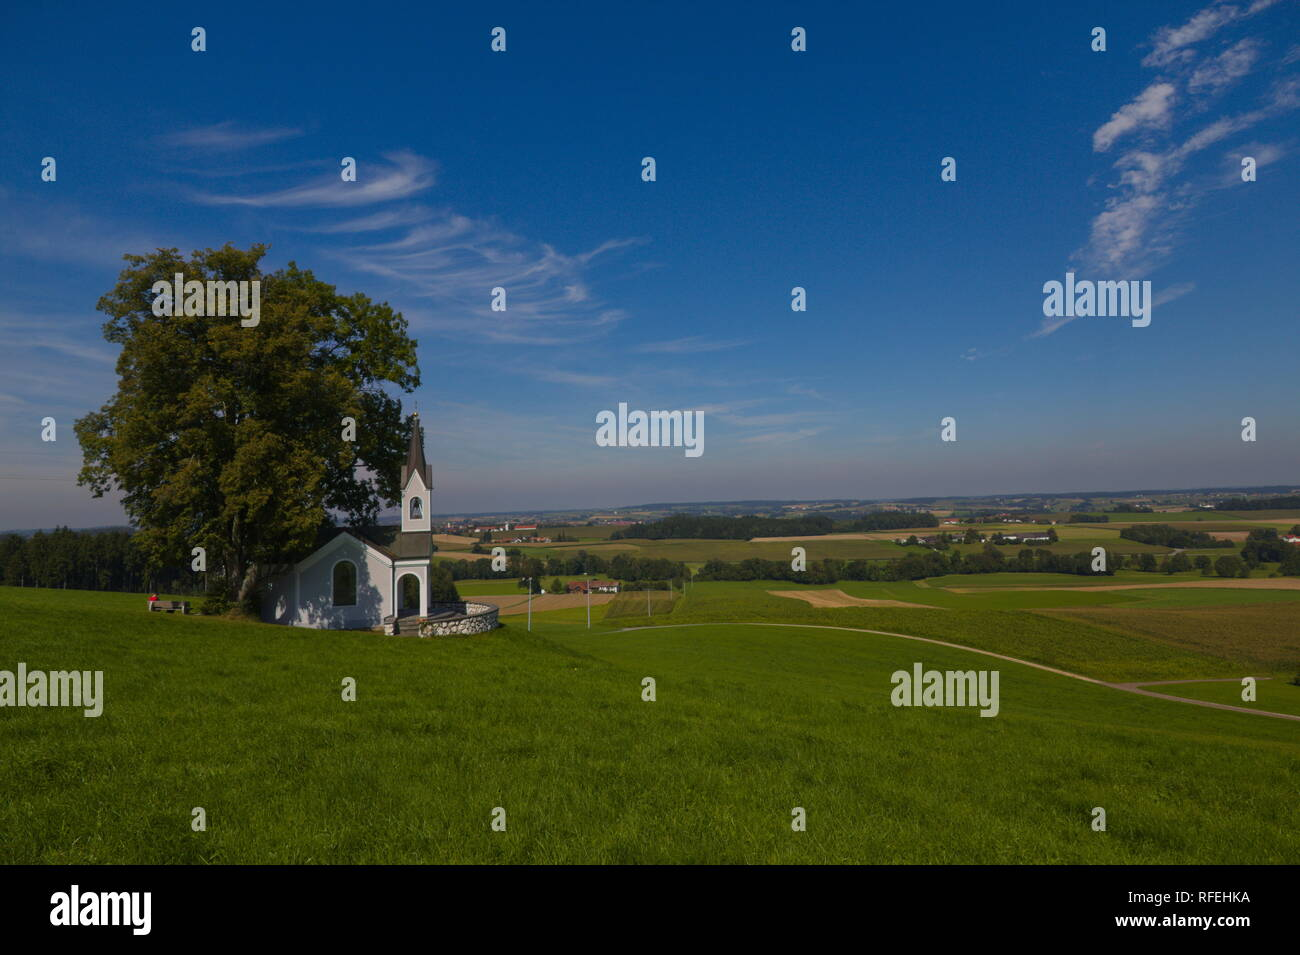 Scenic view over the Isental in Bavaria with a chapell and a cloudy blue sky - Stock Image